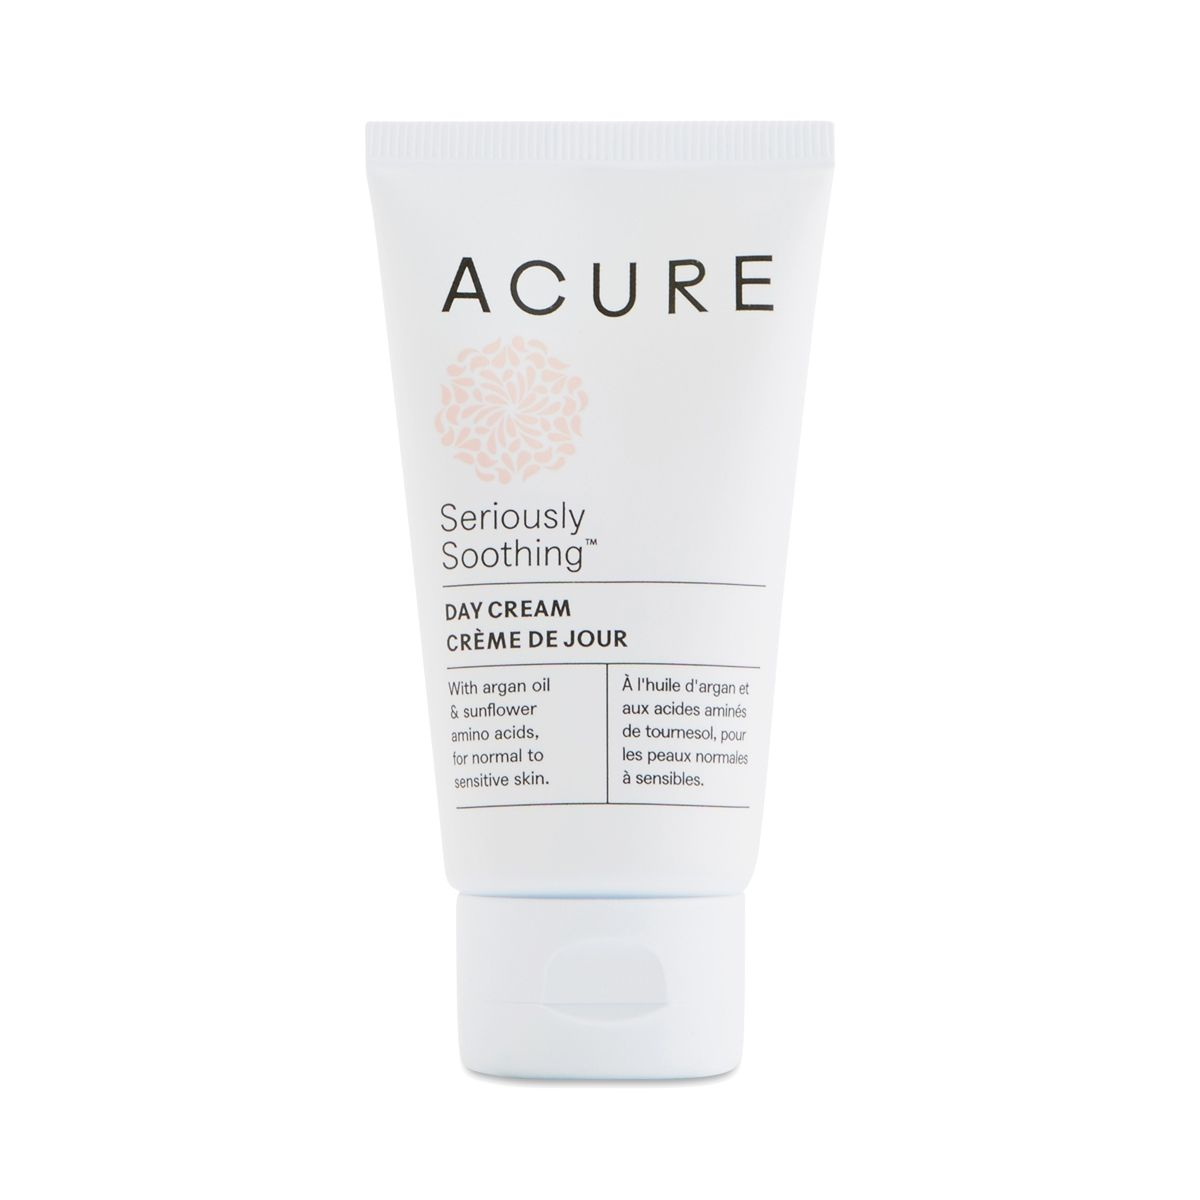 Acure Seriously Soothing Day Cream 1.75 Oz Tube